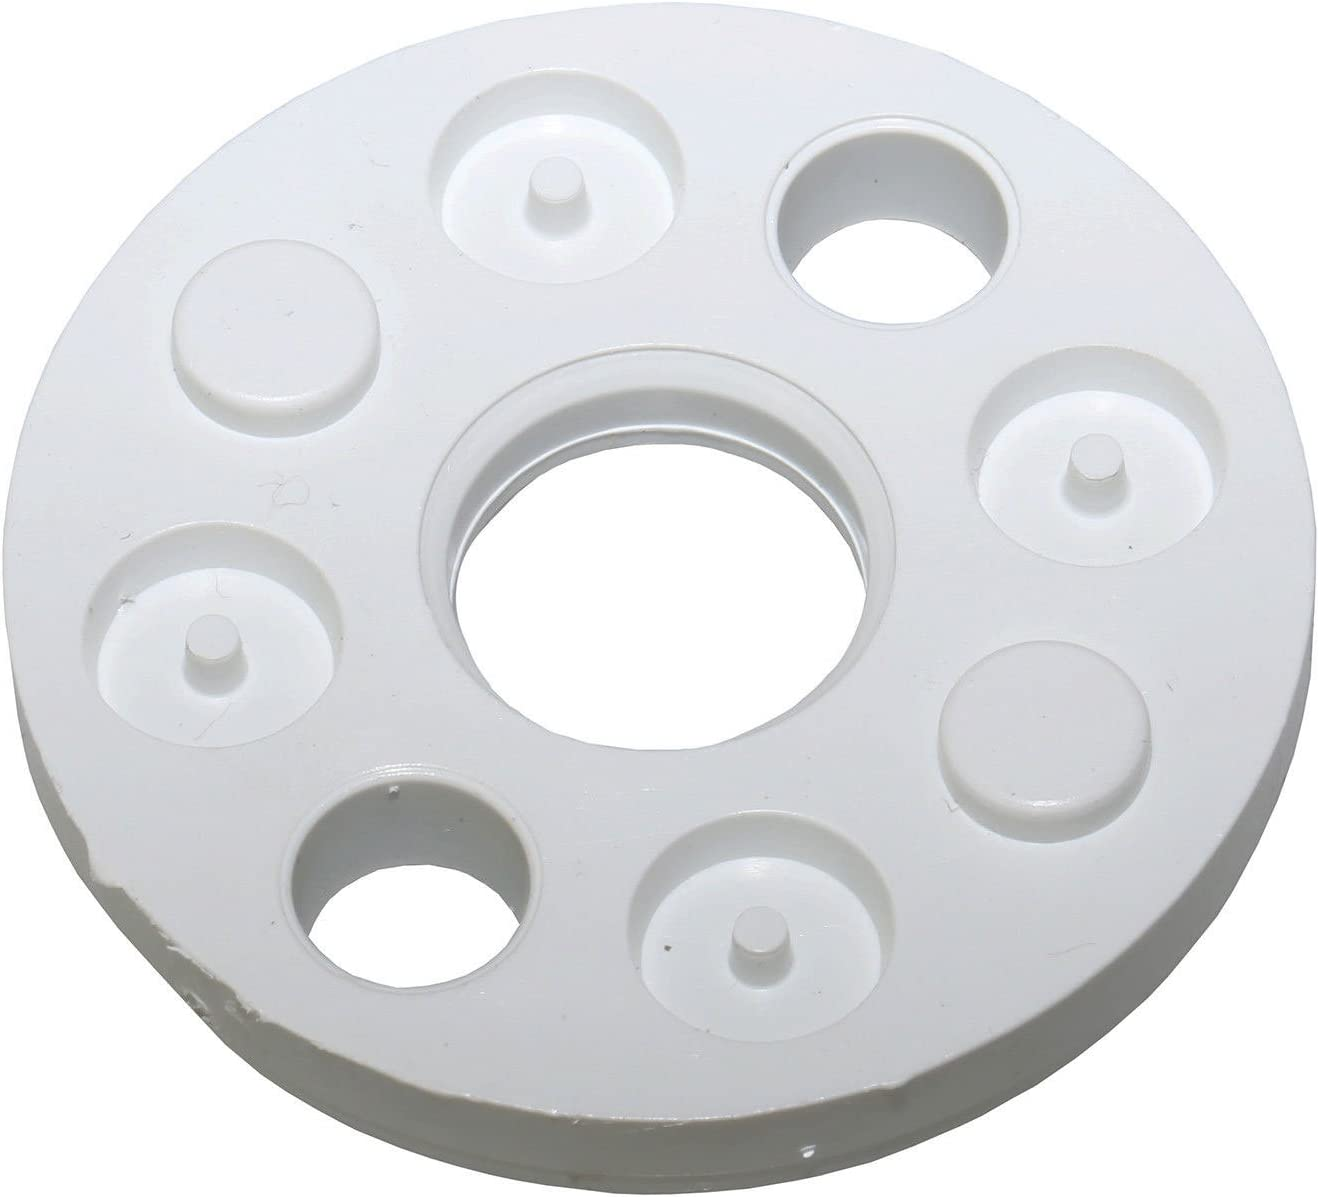 First4spares Replacement Blade Spacer Washers For McGregor Lawnmowers Pack of 4